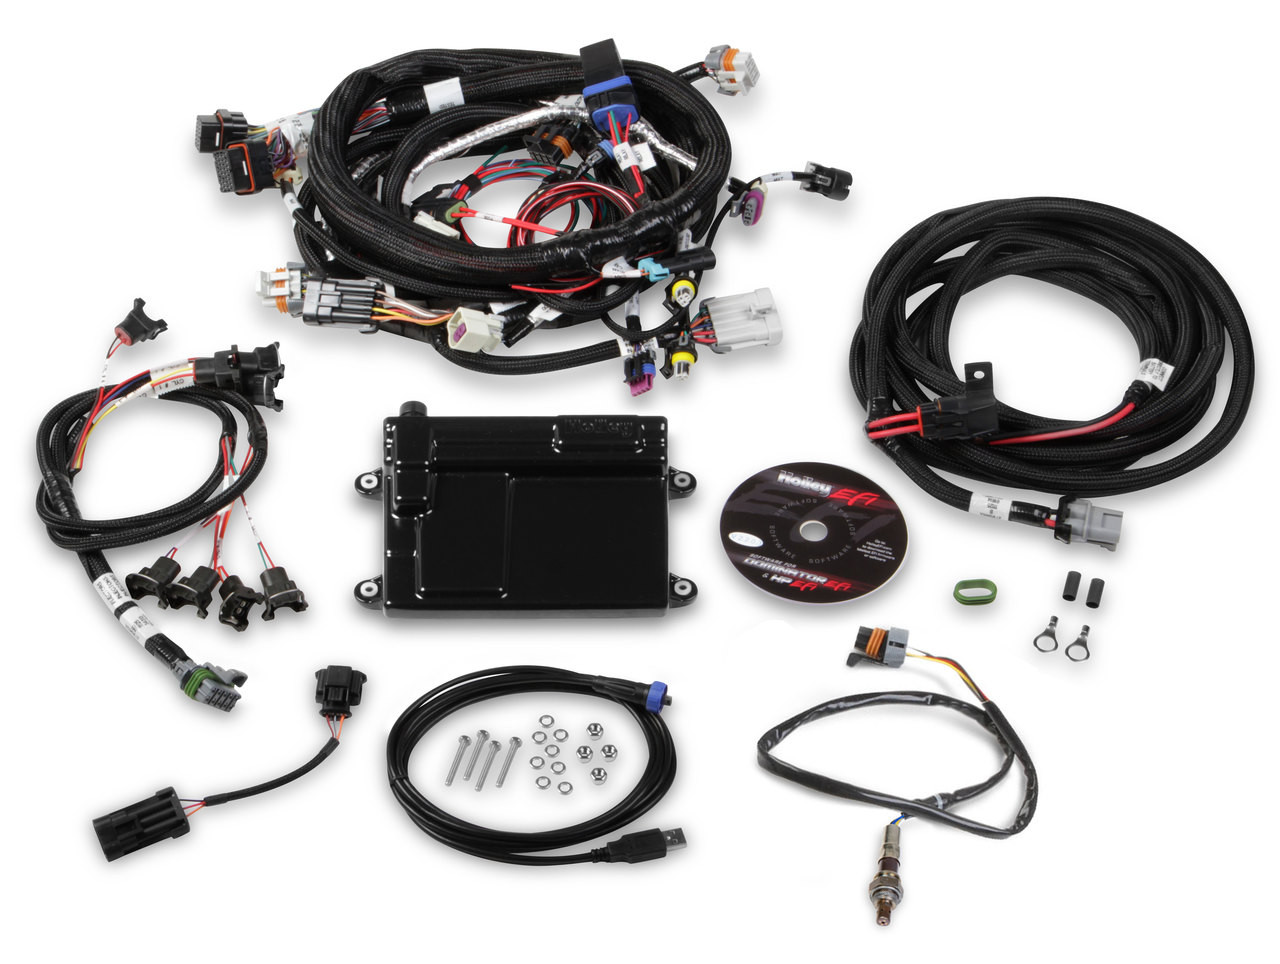 medium resolution of holley hp efi plug and play ecu and harness kit for gm ls2 ls3